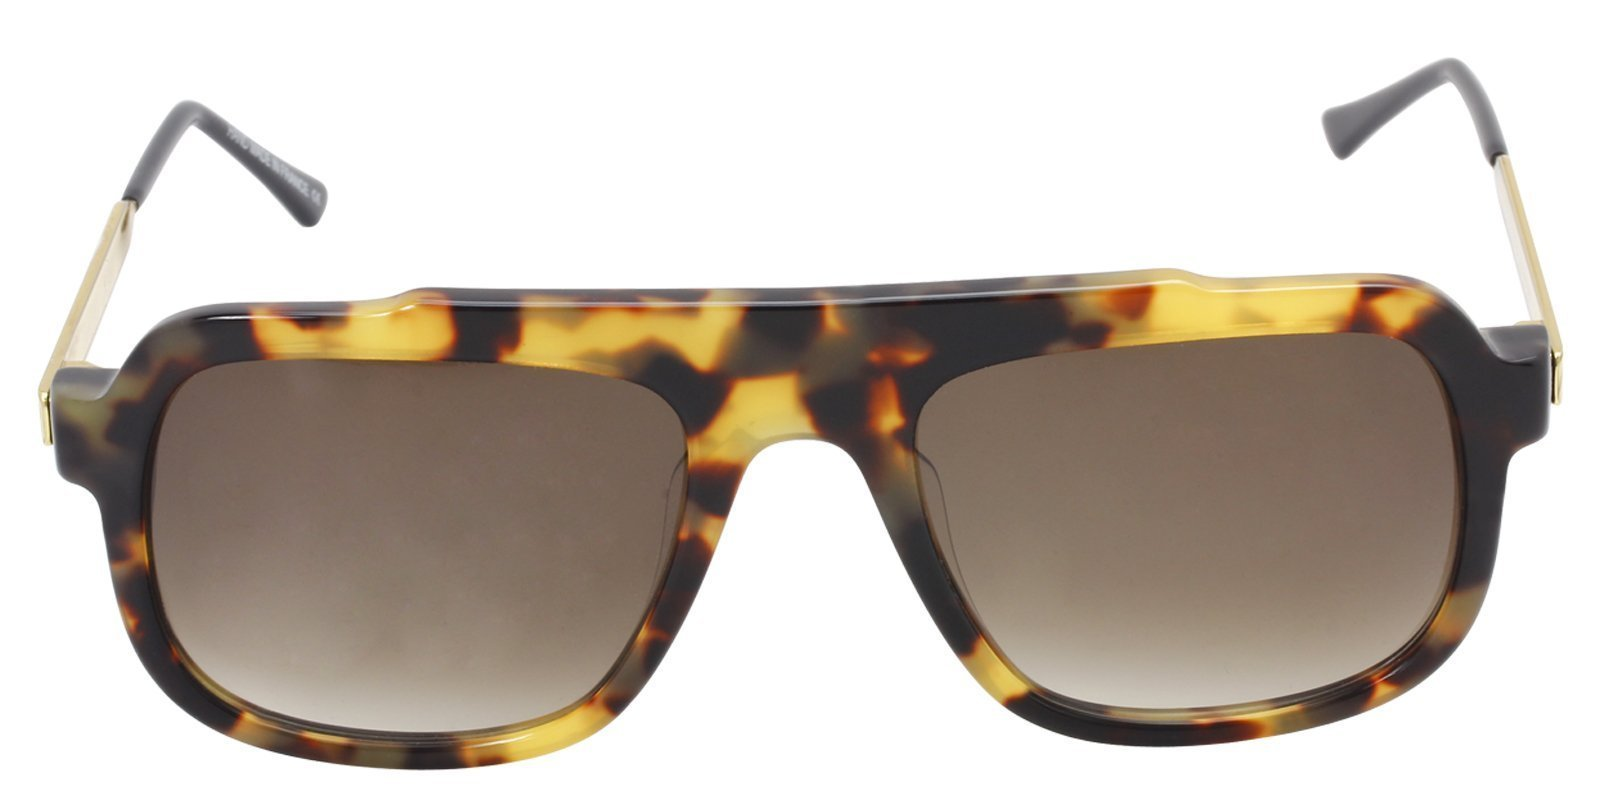 Thierry Lasry - Mastery Tortoise Rectangular Men, Women Sunglasses - 57mm-Sunglasses-Designer Eyes